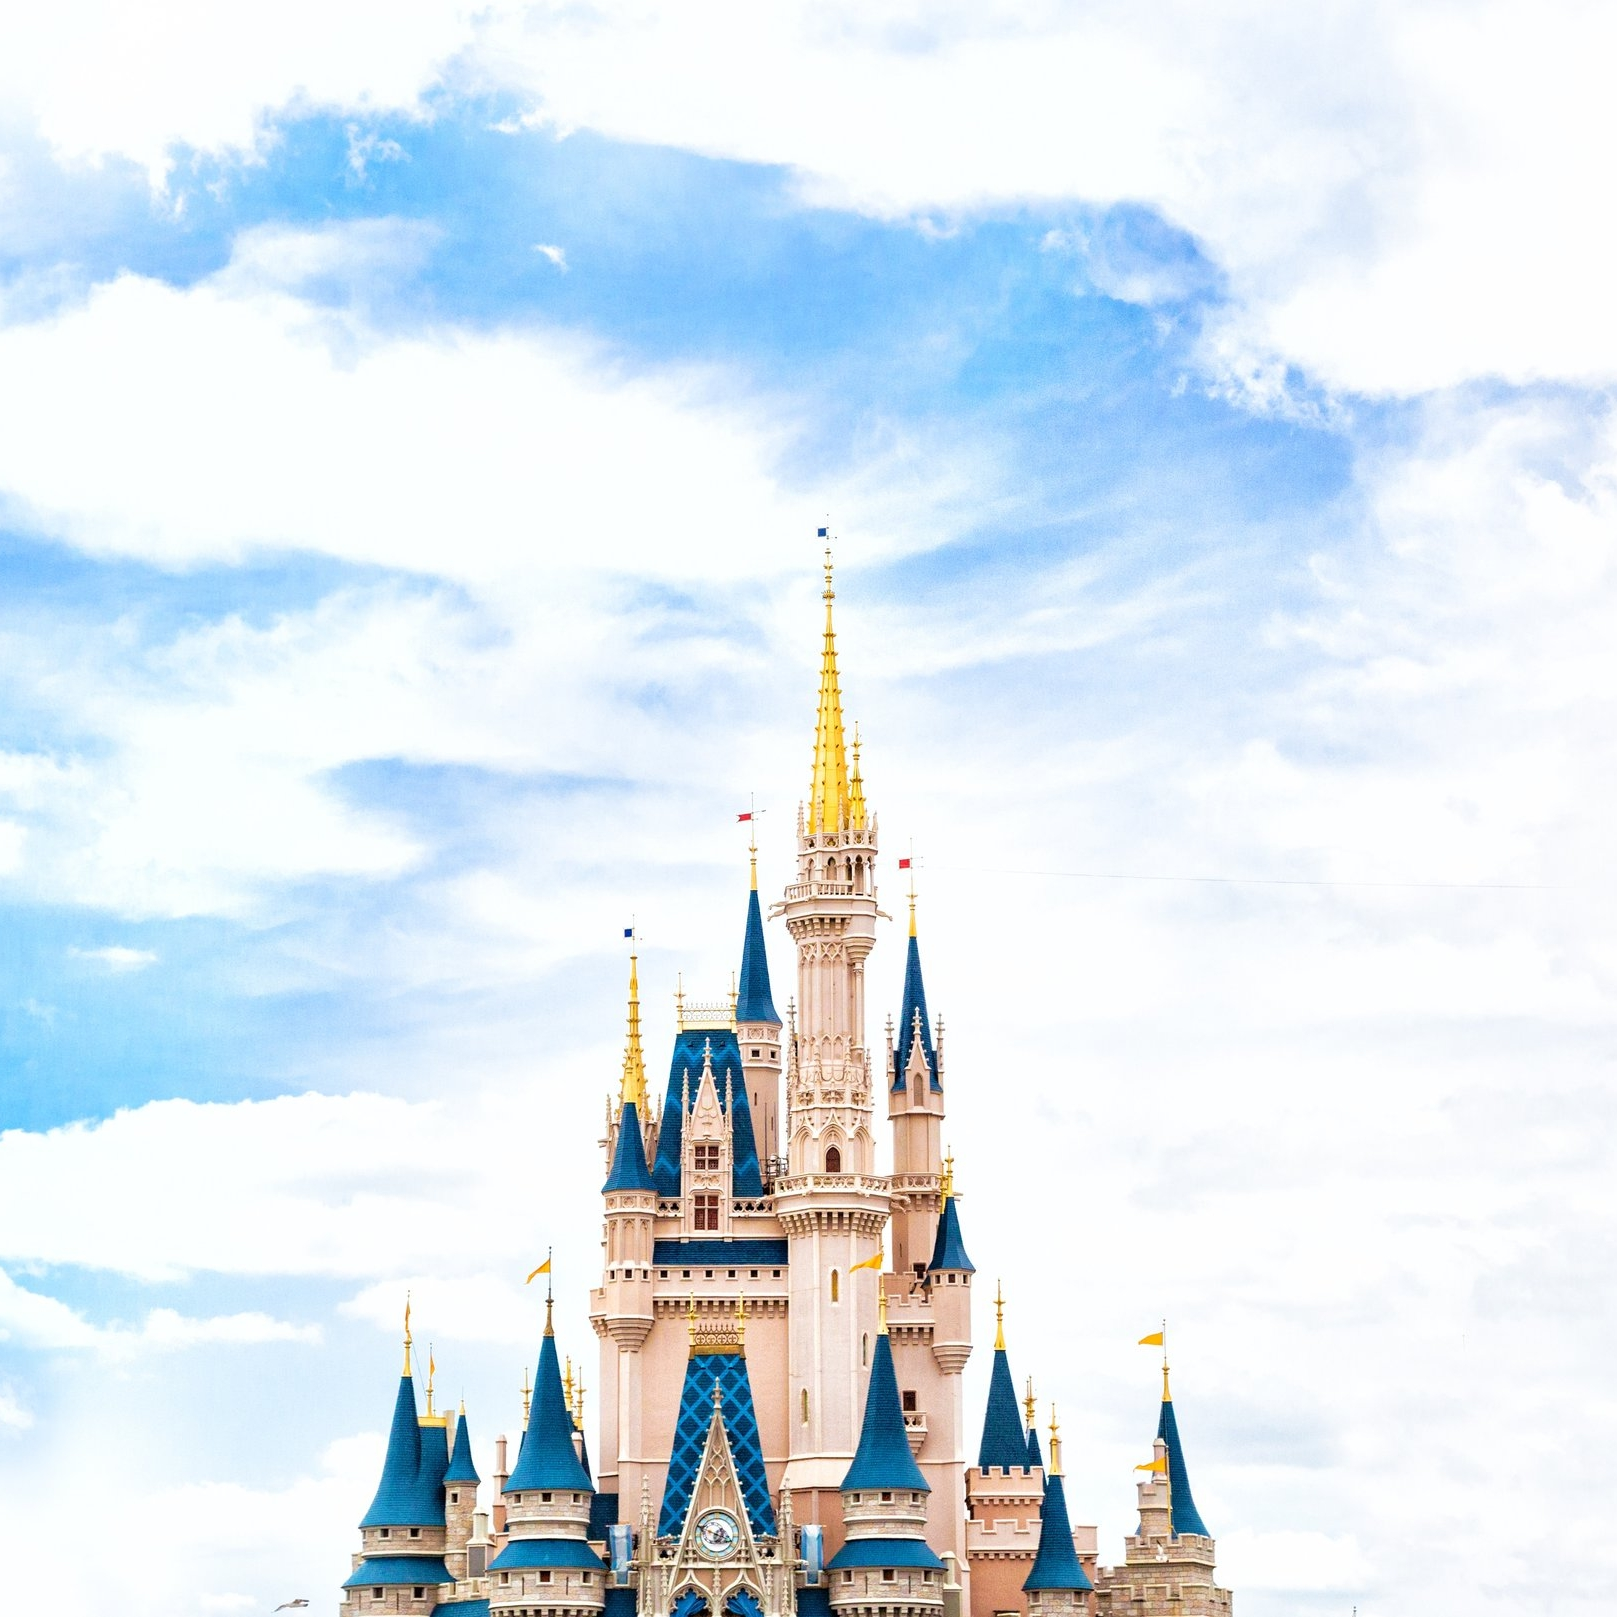 Jennifer Maselli Travel | We book Disney